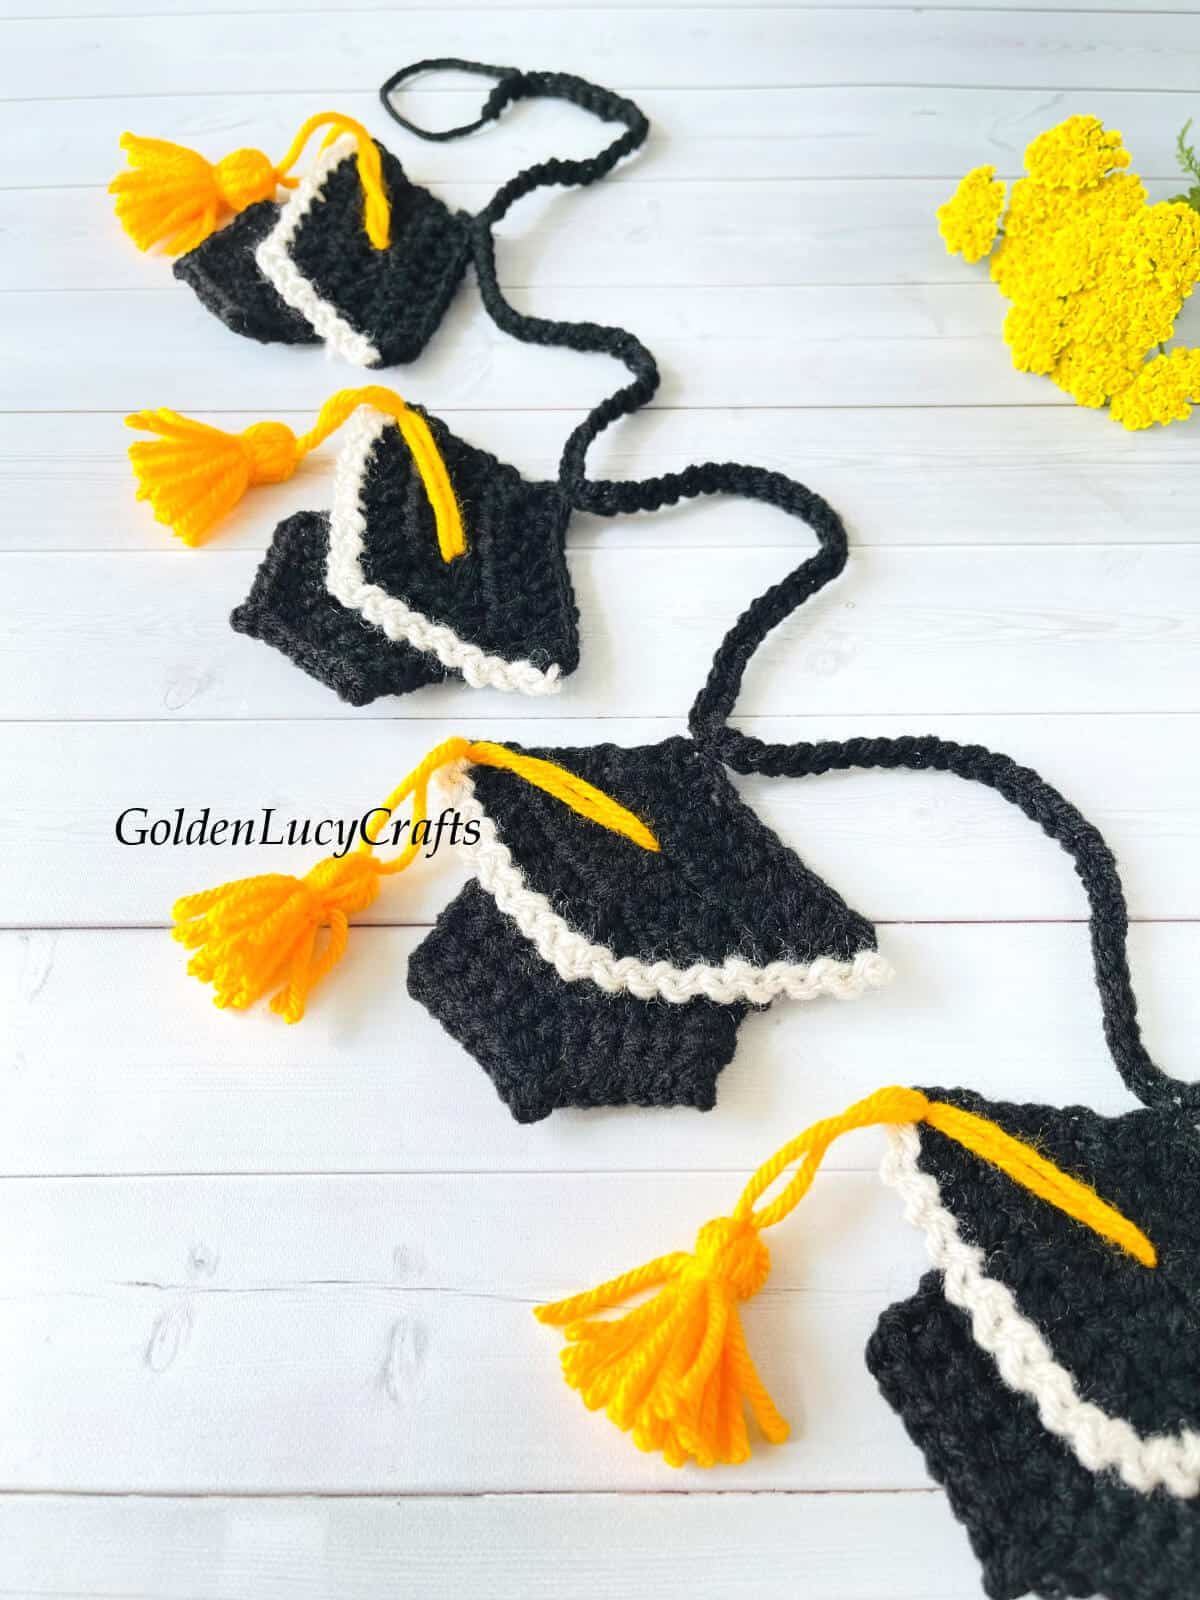 Crocheted graduation garland close up picture.